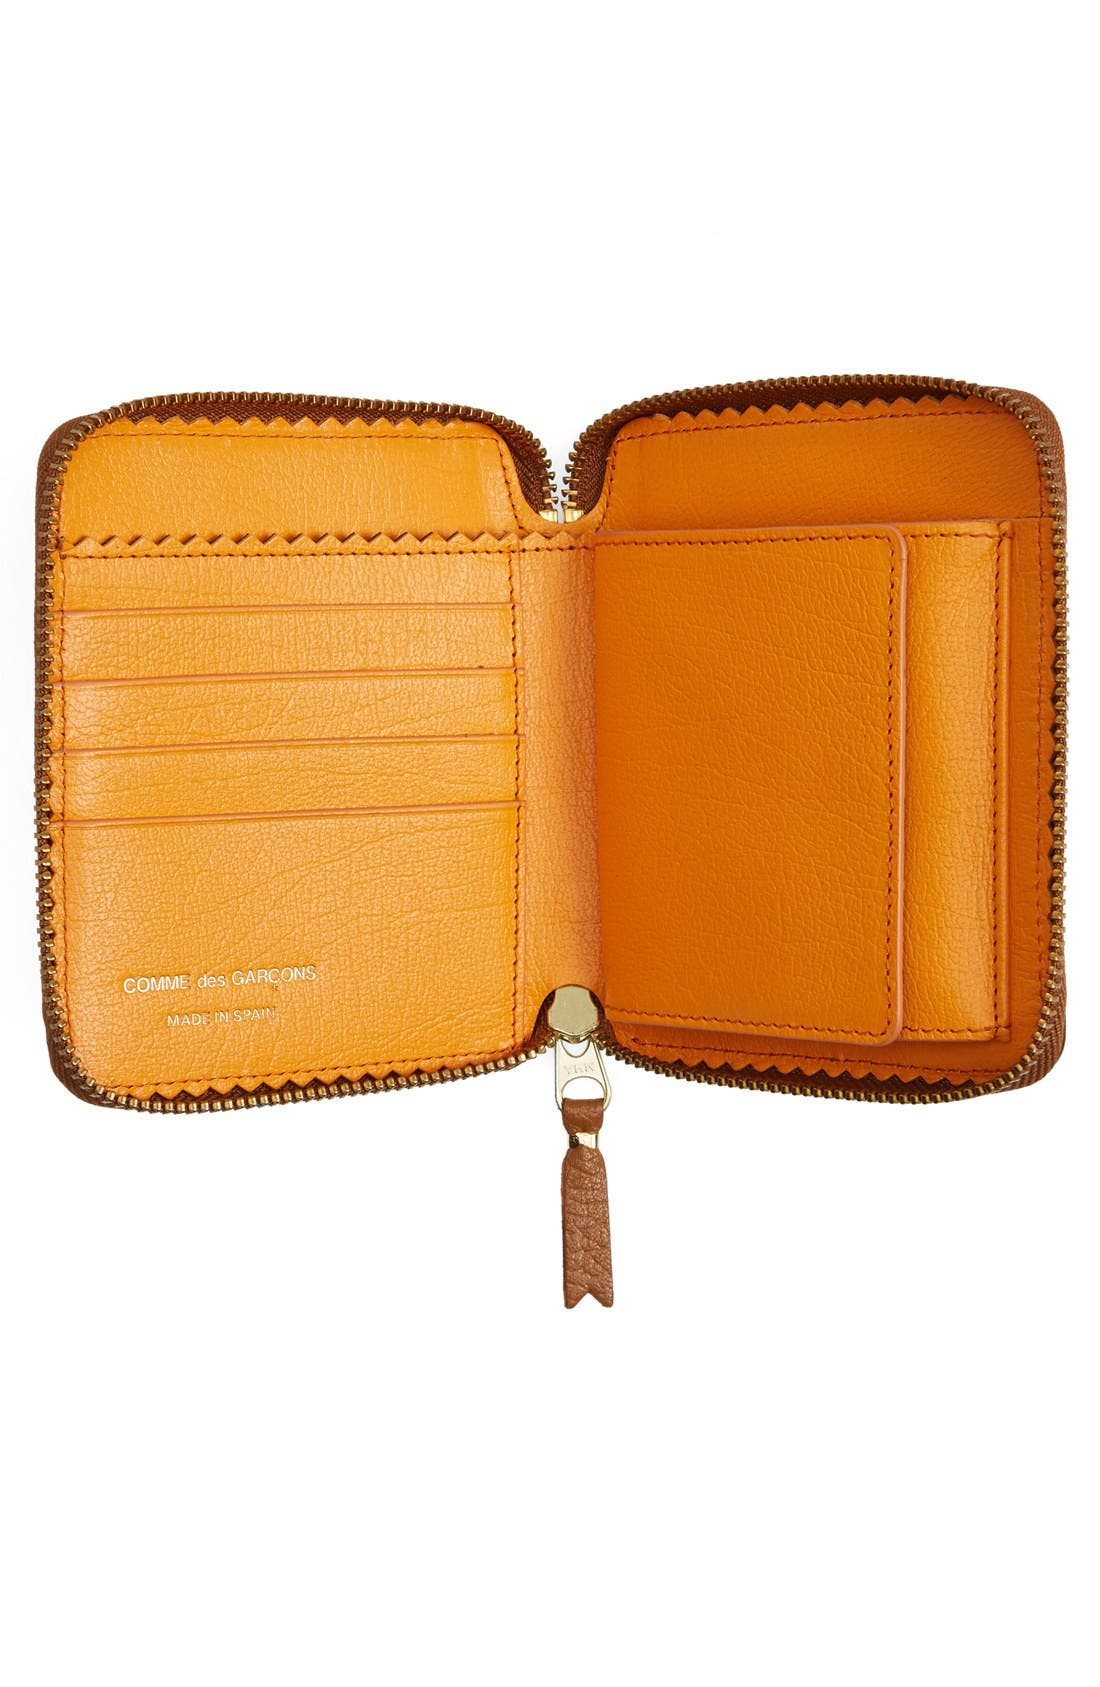 Leather Wallet,                             Alternate thumbnail 2, color,                             200